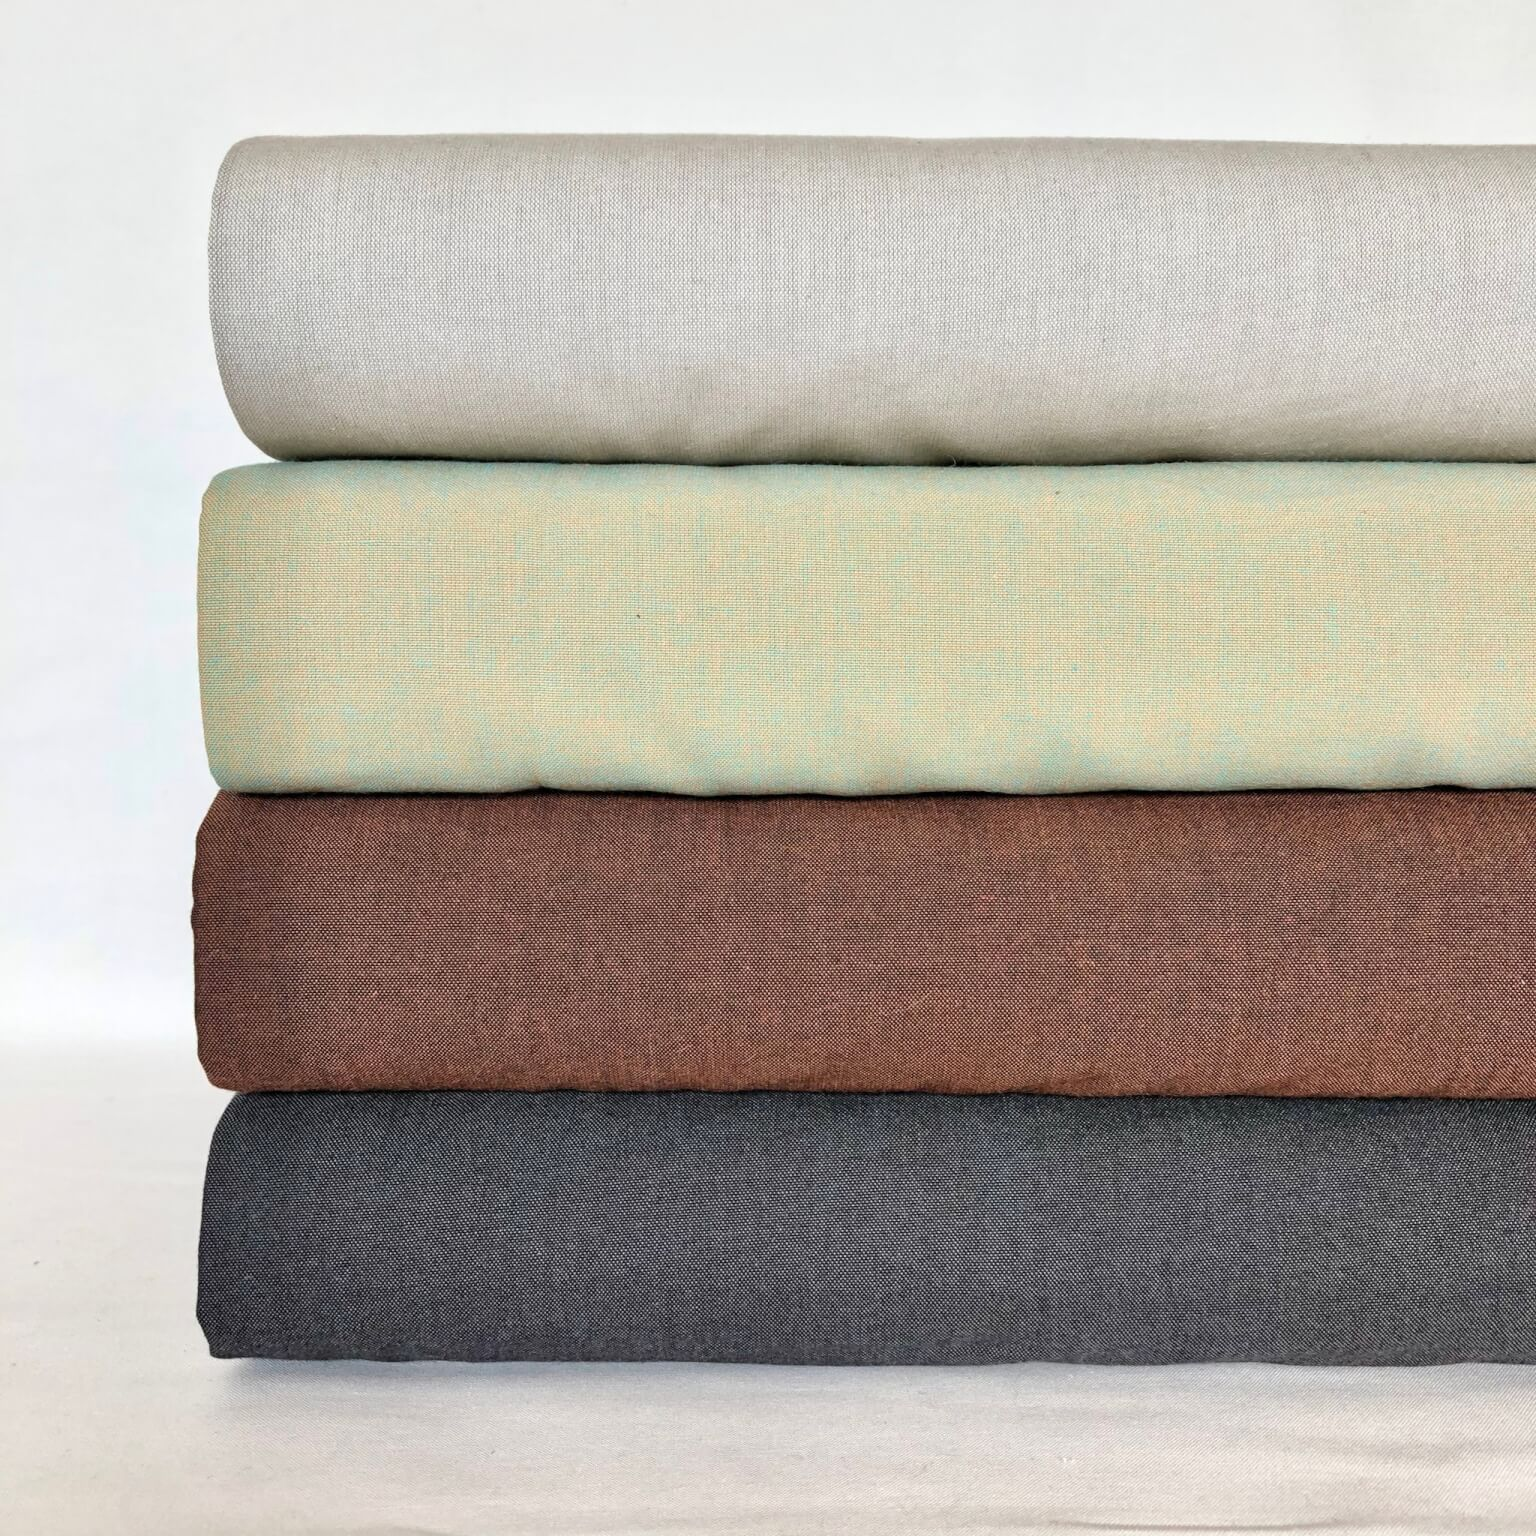 Four bolts of neutral color cotton fabric, stacked with gray on the bottom, then brown, then pale green, and then beige on top.